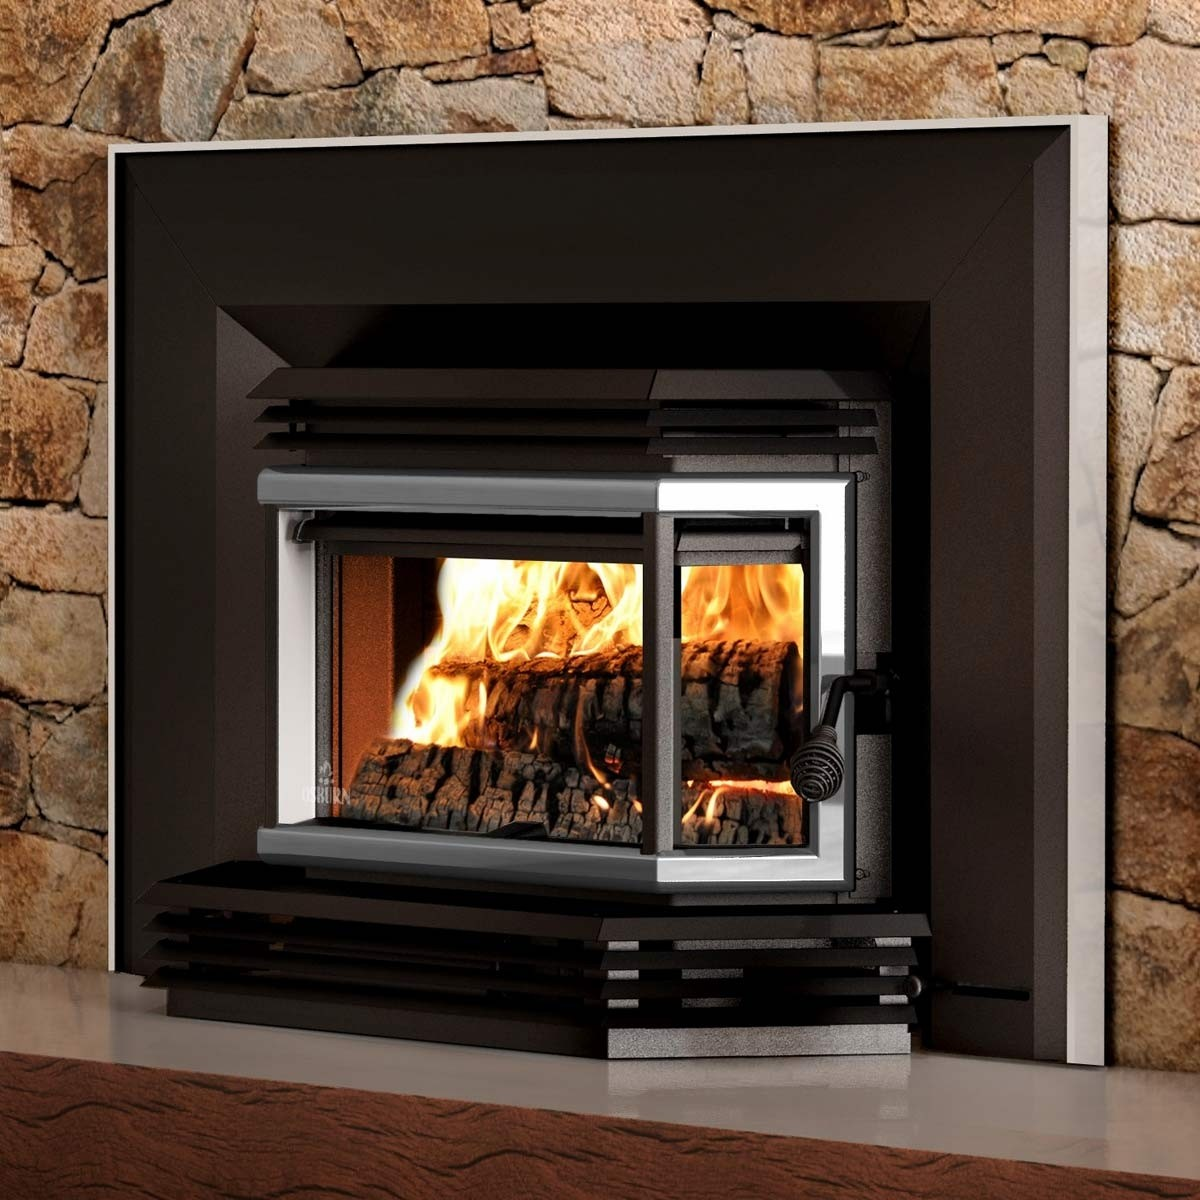 Best Wood Burning Fireplace Inserts Consumer Reports Top Rated